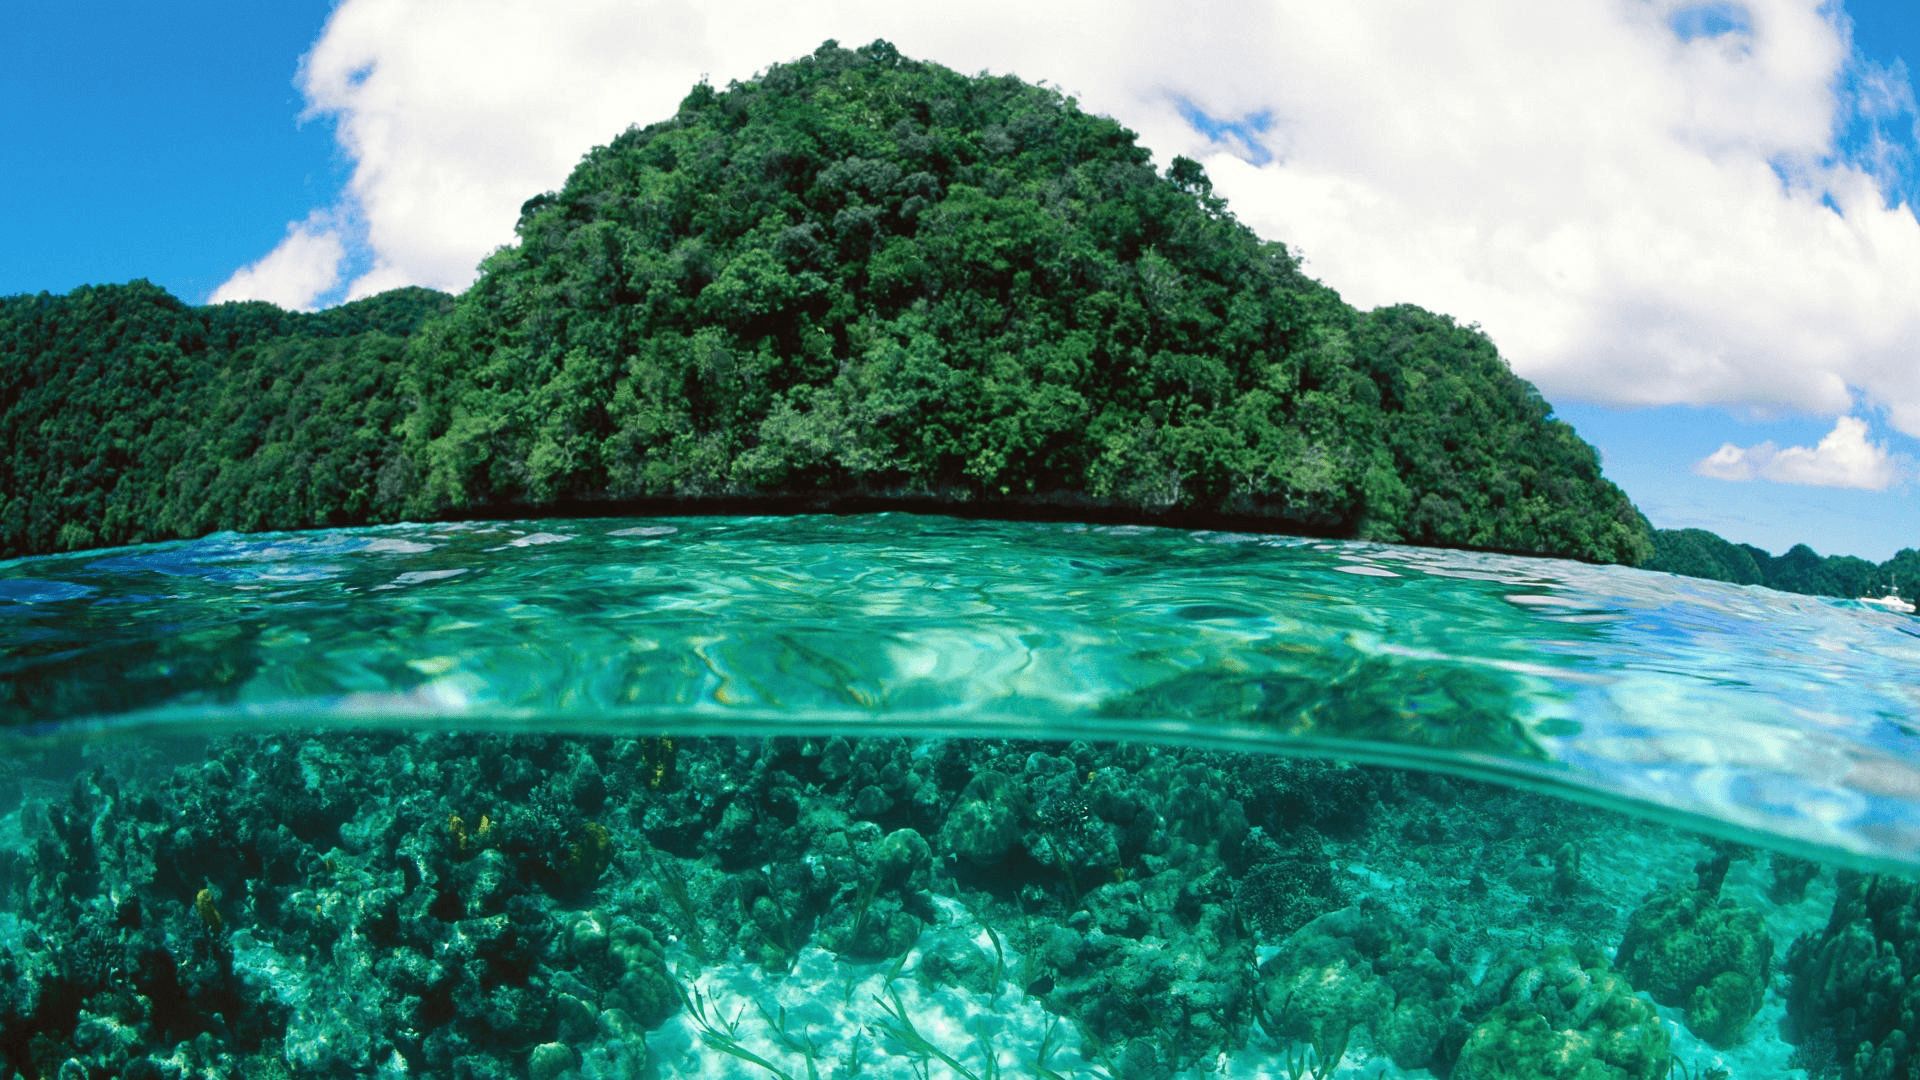 Solomon Islands Full Hd Wallpapers